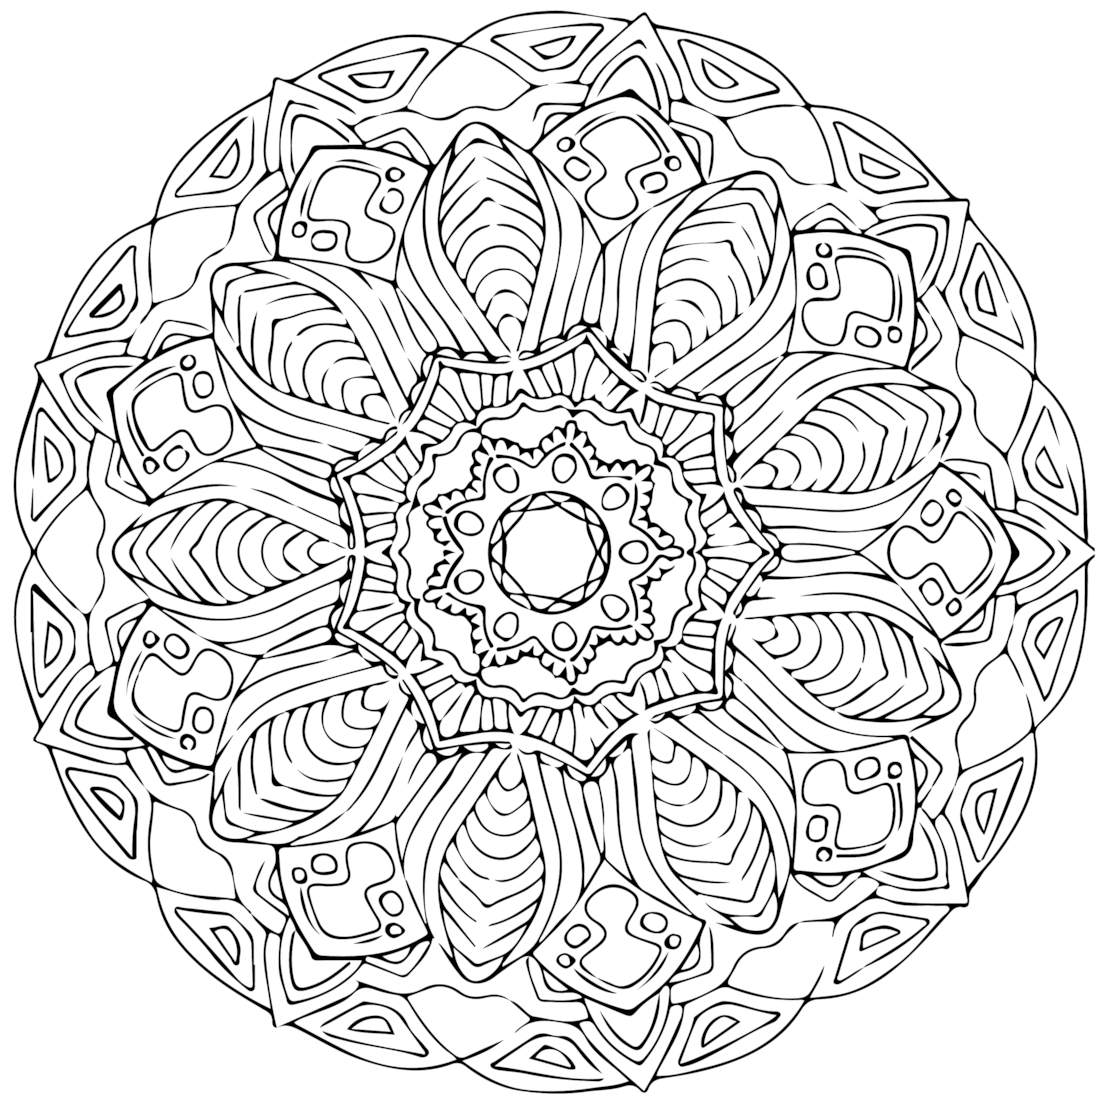 Picture of Family Heirloom coloring page